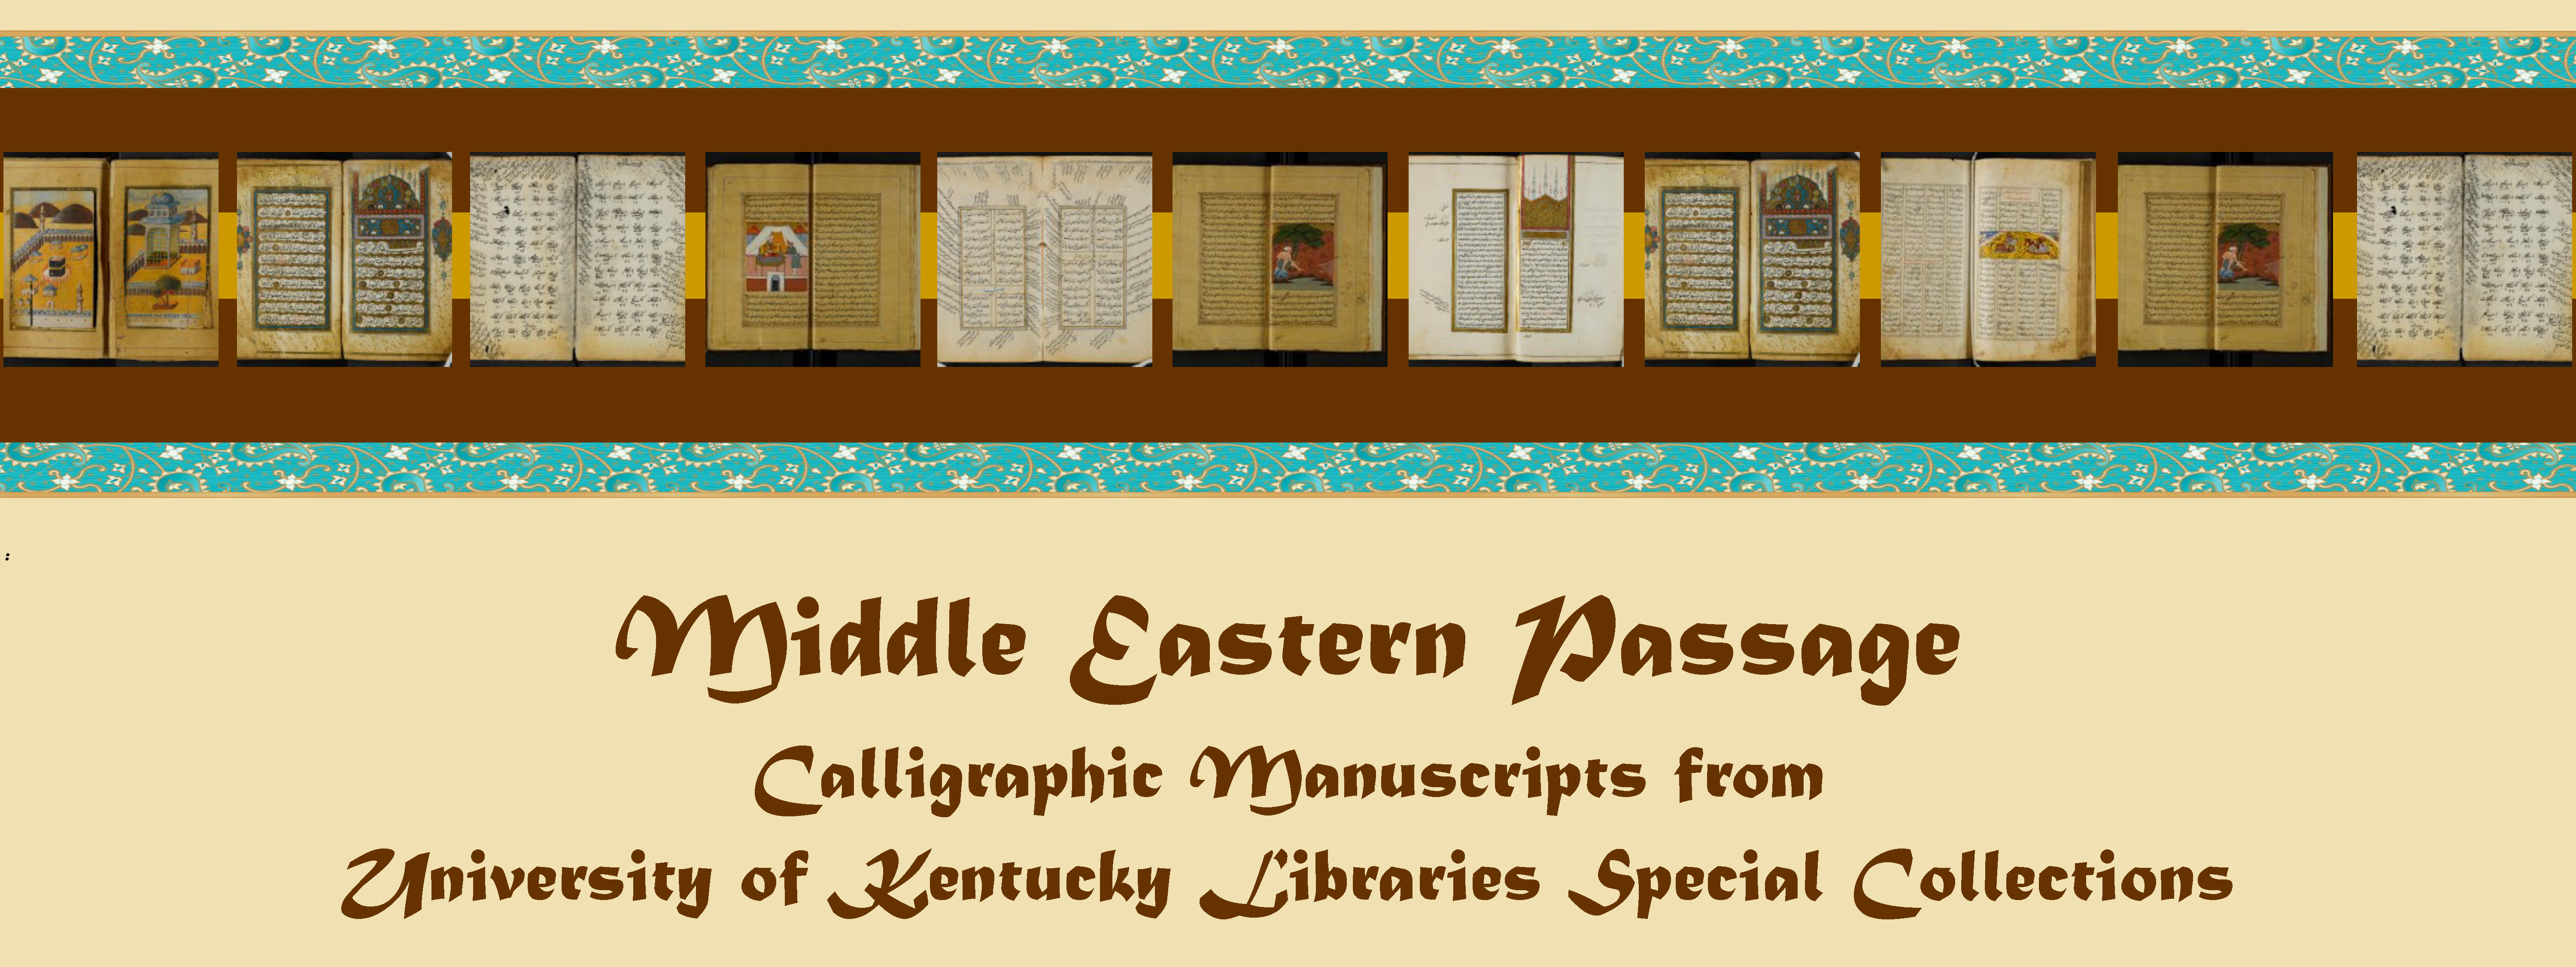 Middle Eastern Passage: Calligraphic Manuscripts from University of Kentucky Libraries Special Collections